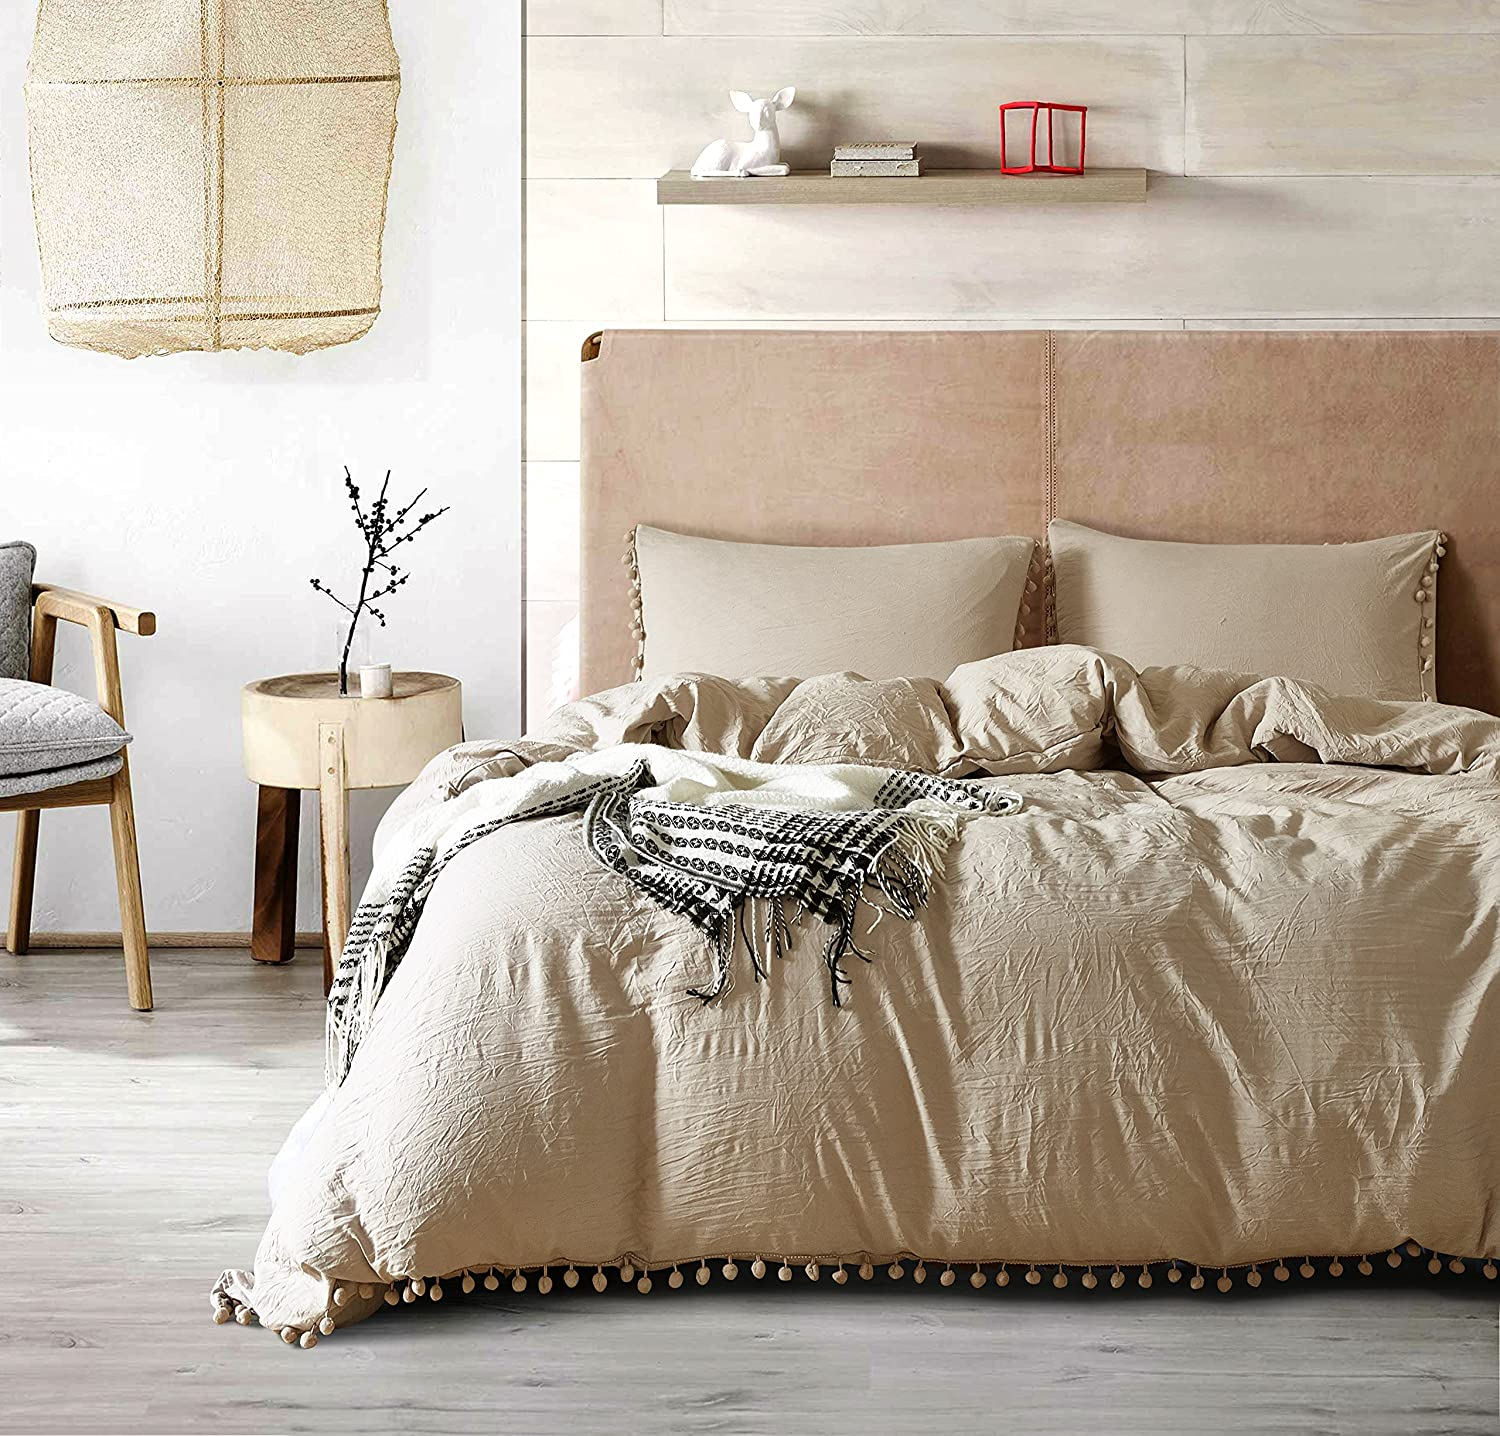 AiMay Pom Poms 3 Piece Duvet Cover Set (1 Duvet Cover + 2 Pillowcases) Stone-Washed Brushed Luxury 100% Super Soft Microfiber Bedding Collection (Khaki/Camel, Queen)